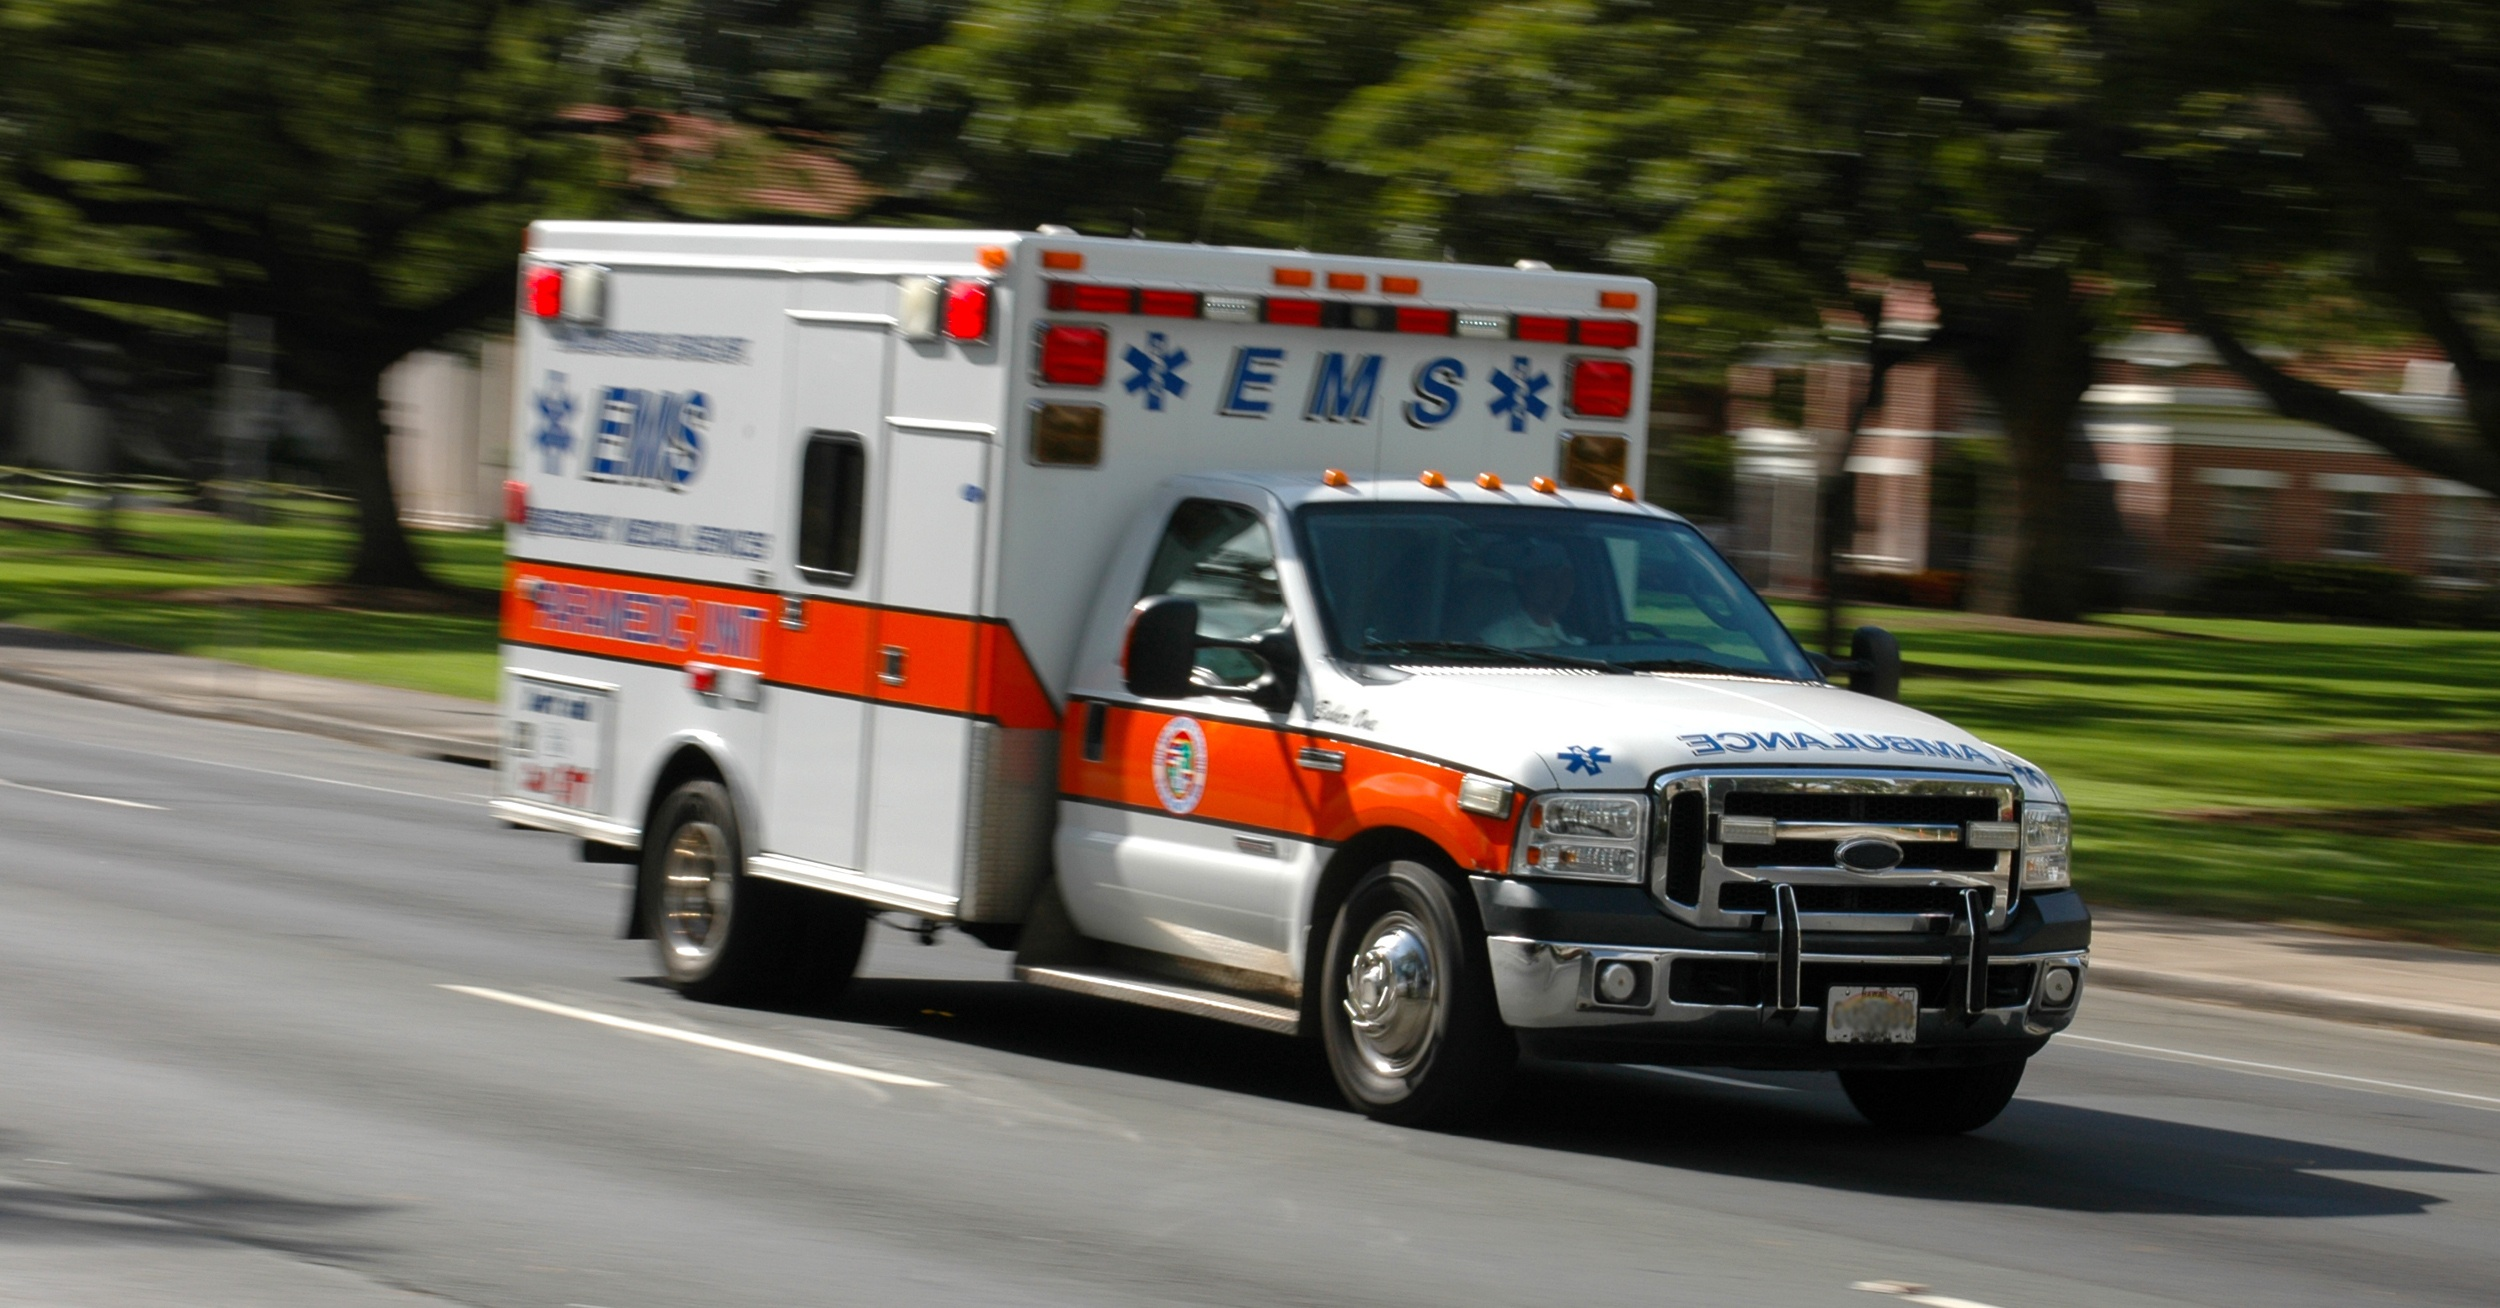 Information management insights for EMS and ambulance service providers